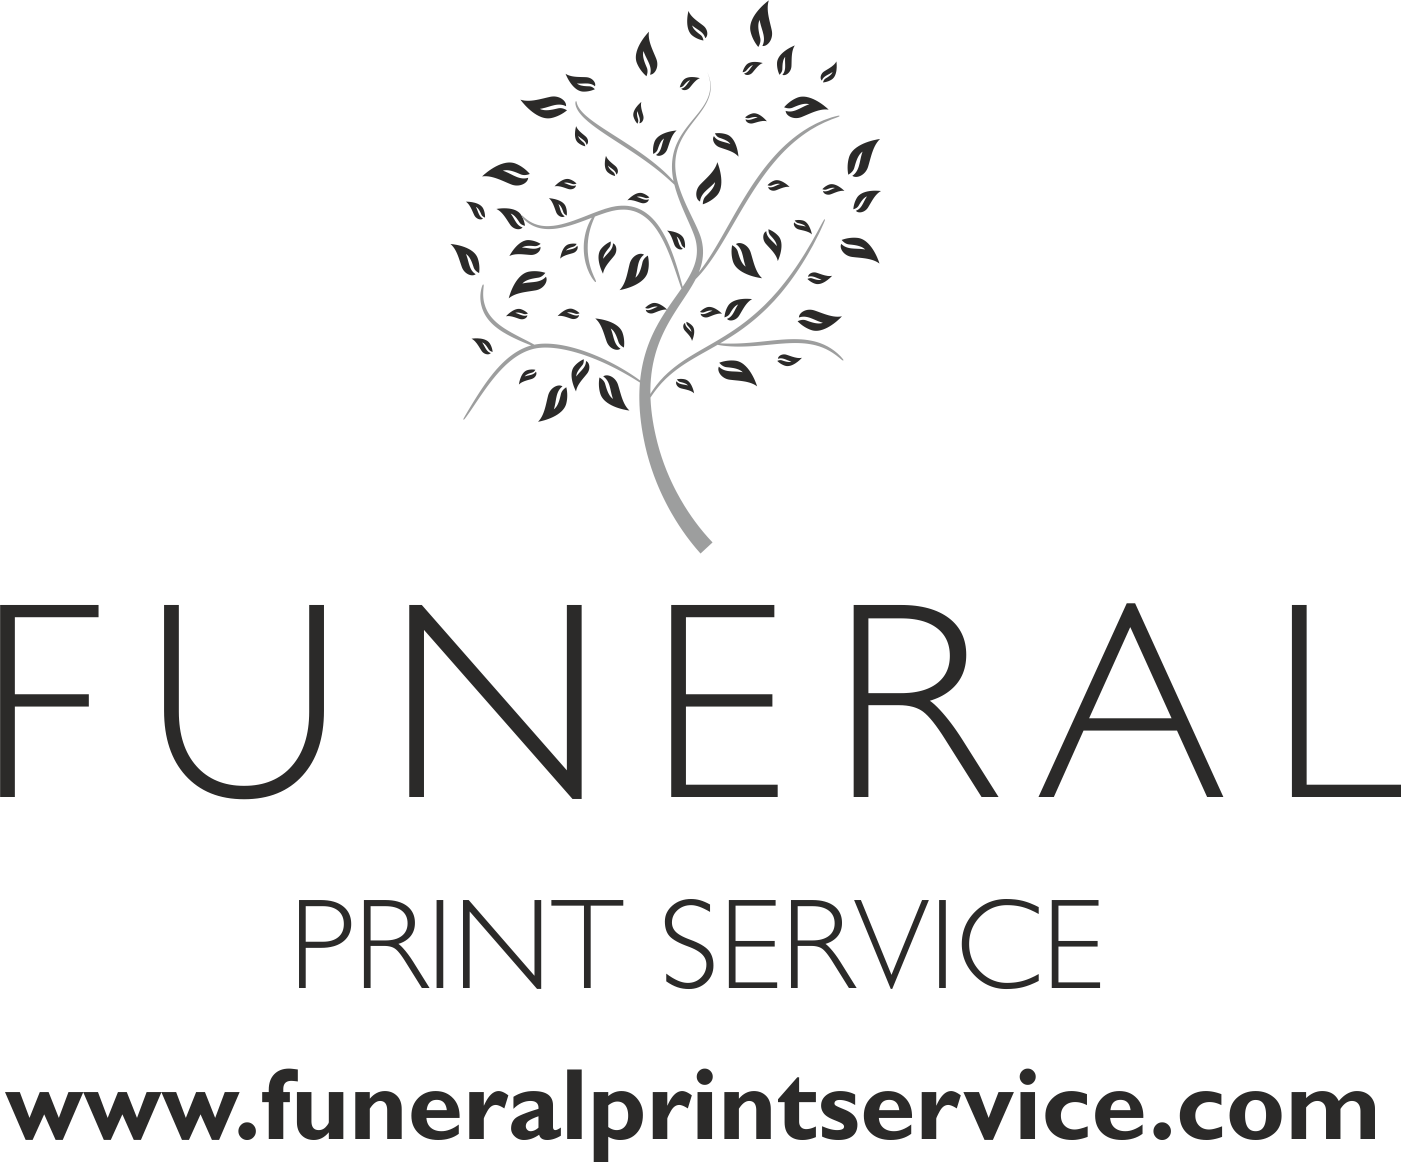 Funeral Print Service